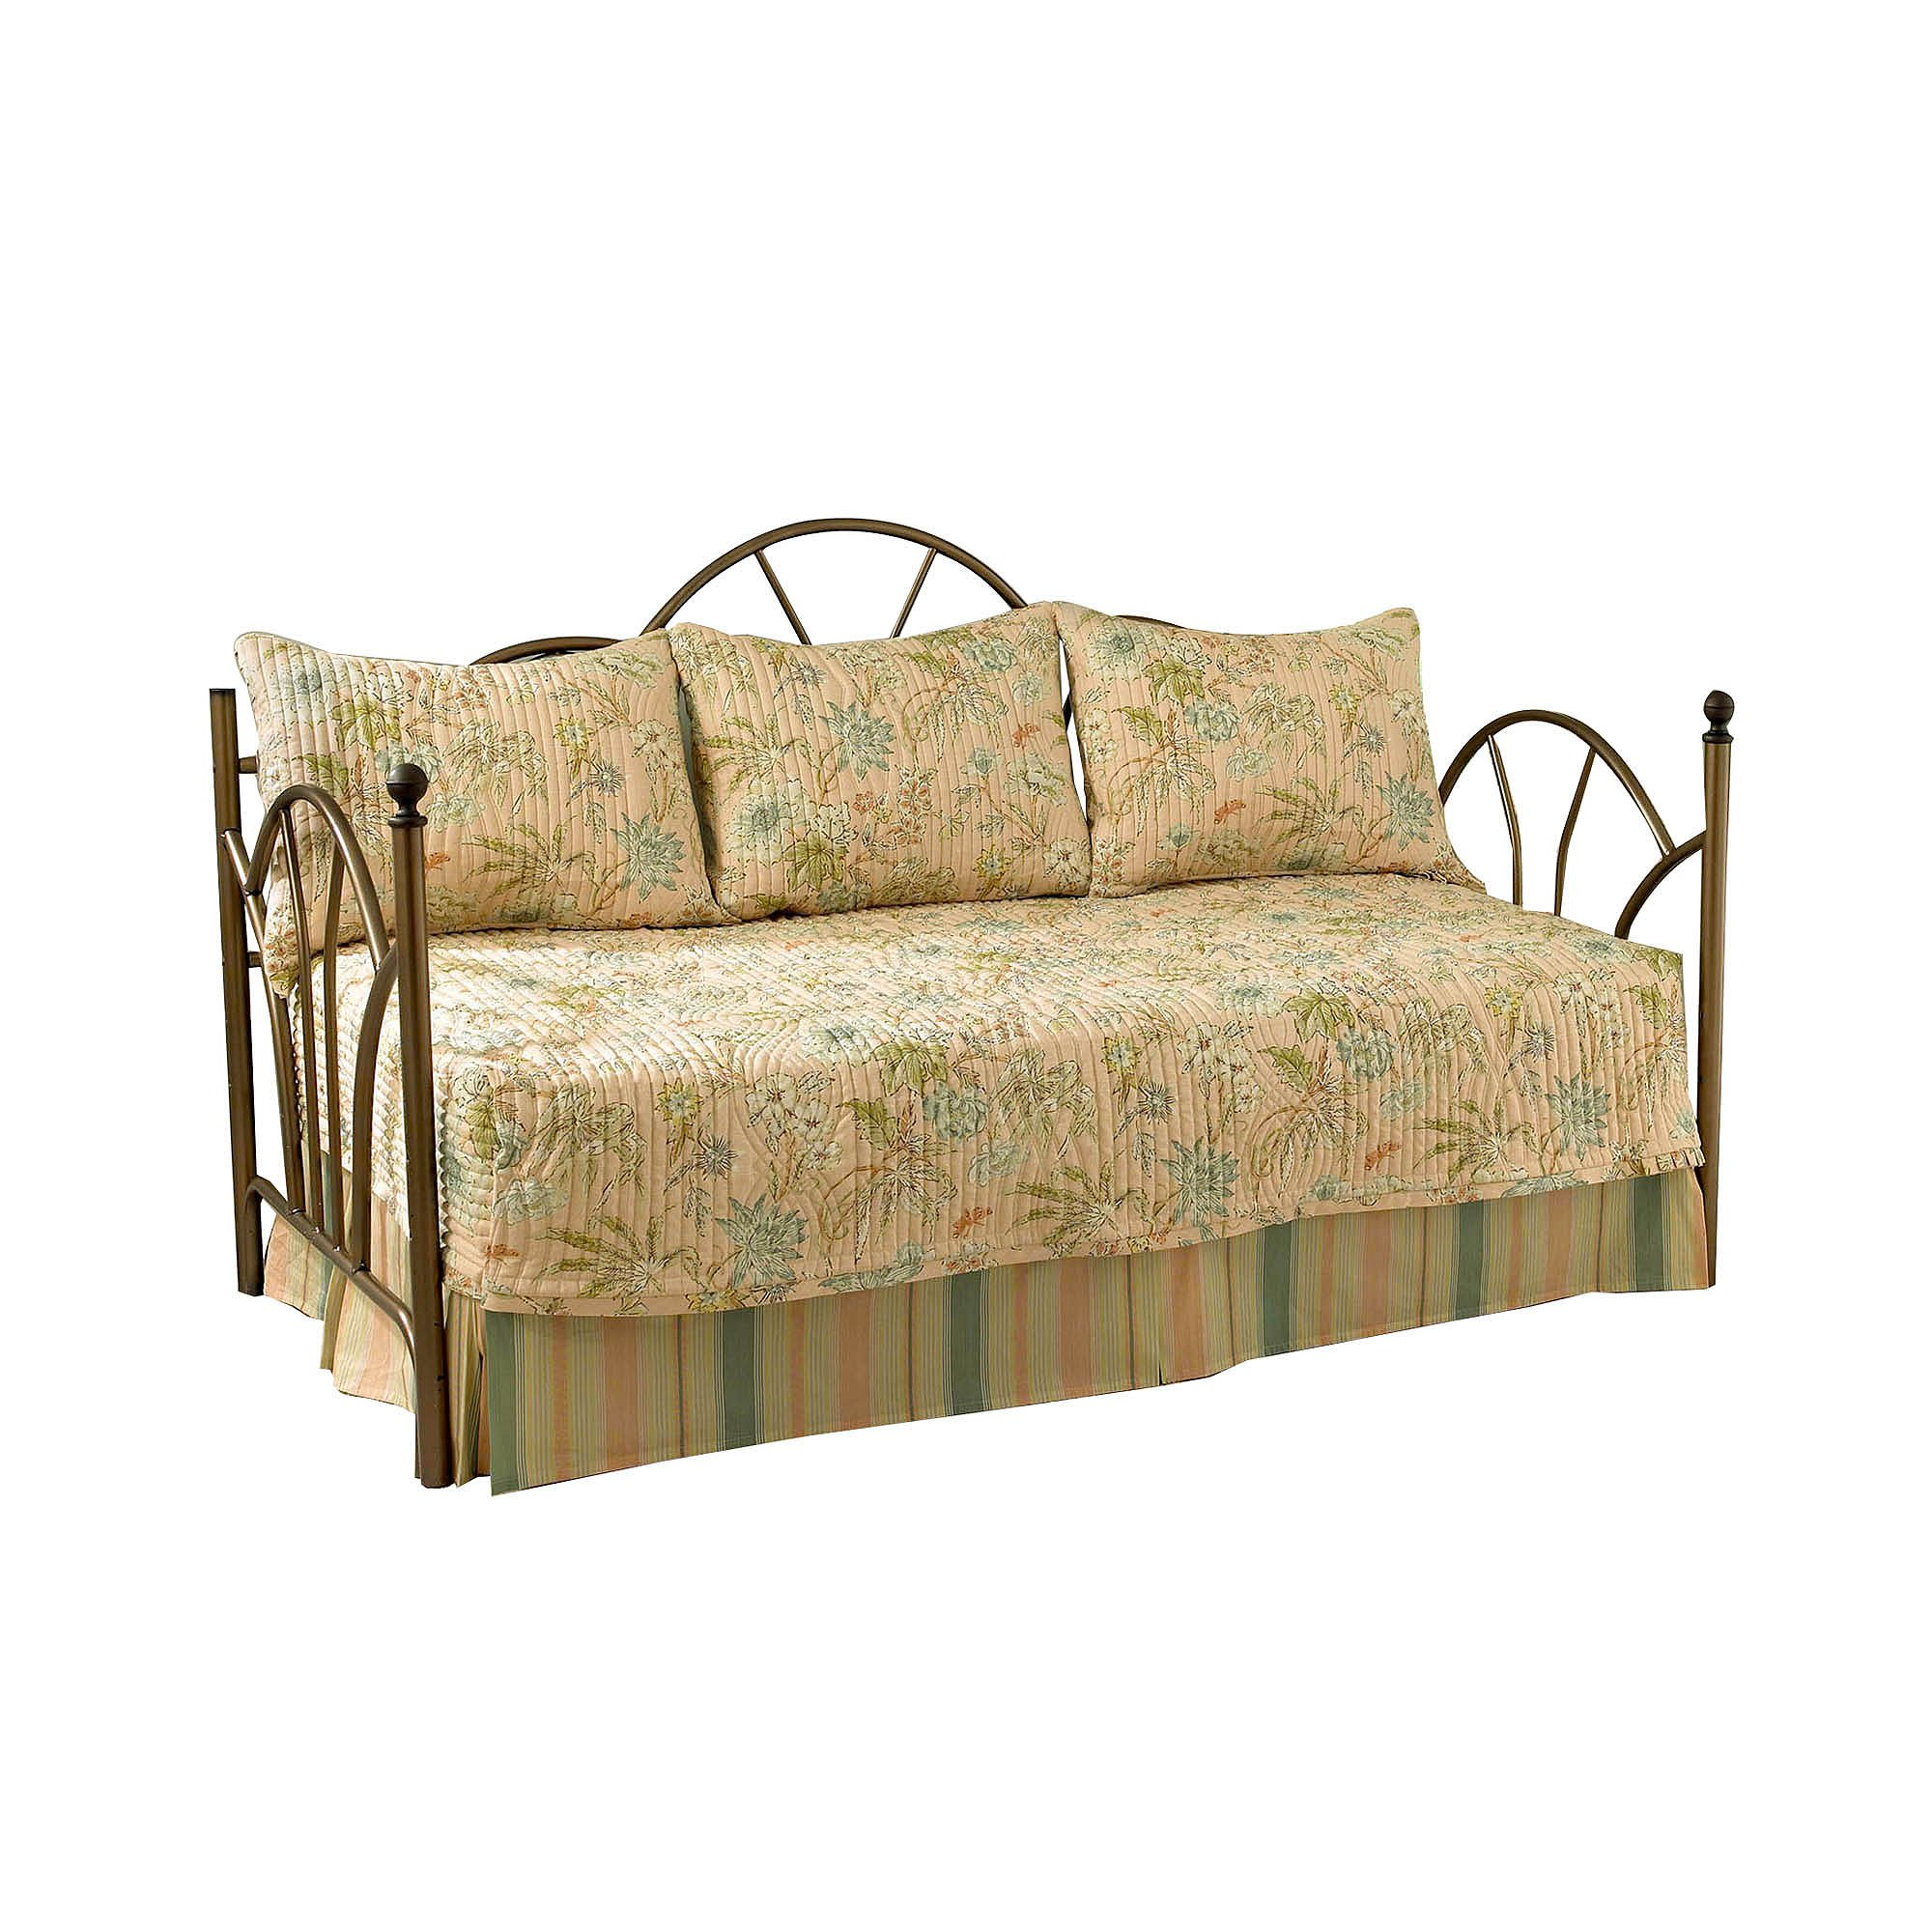 Waverly Cape Cotton Daybed Set, 54 x 105'', Coral